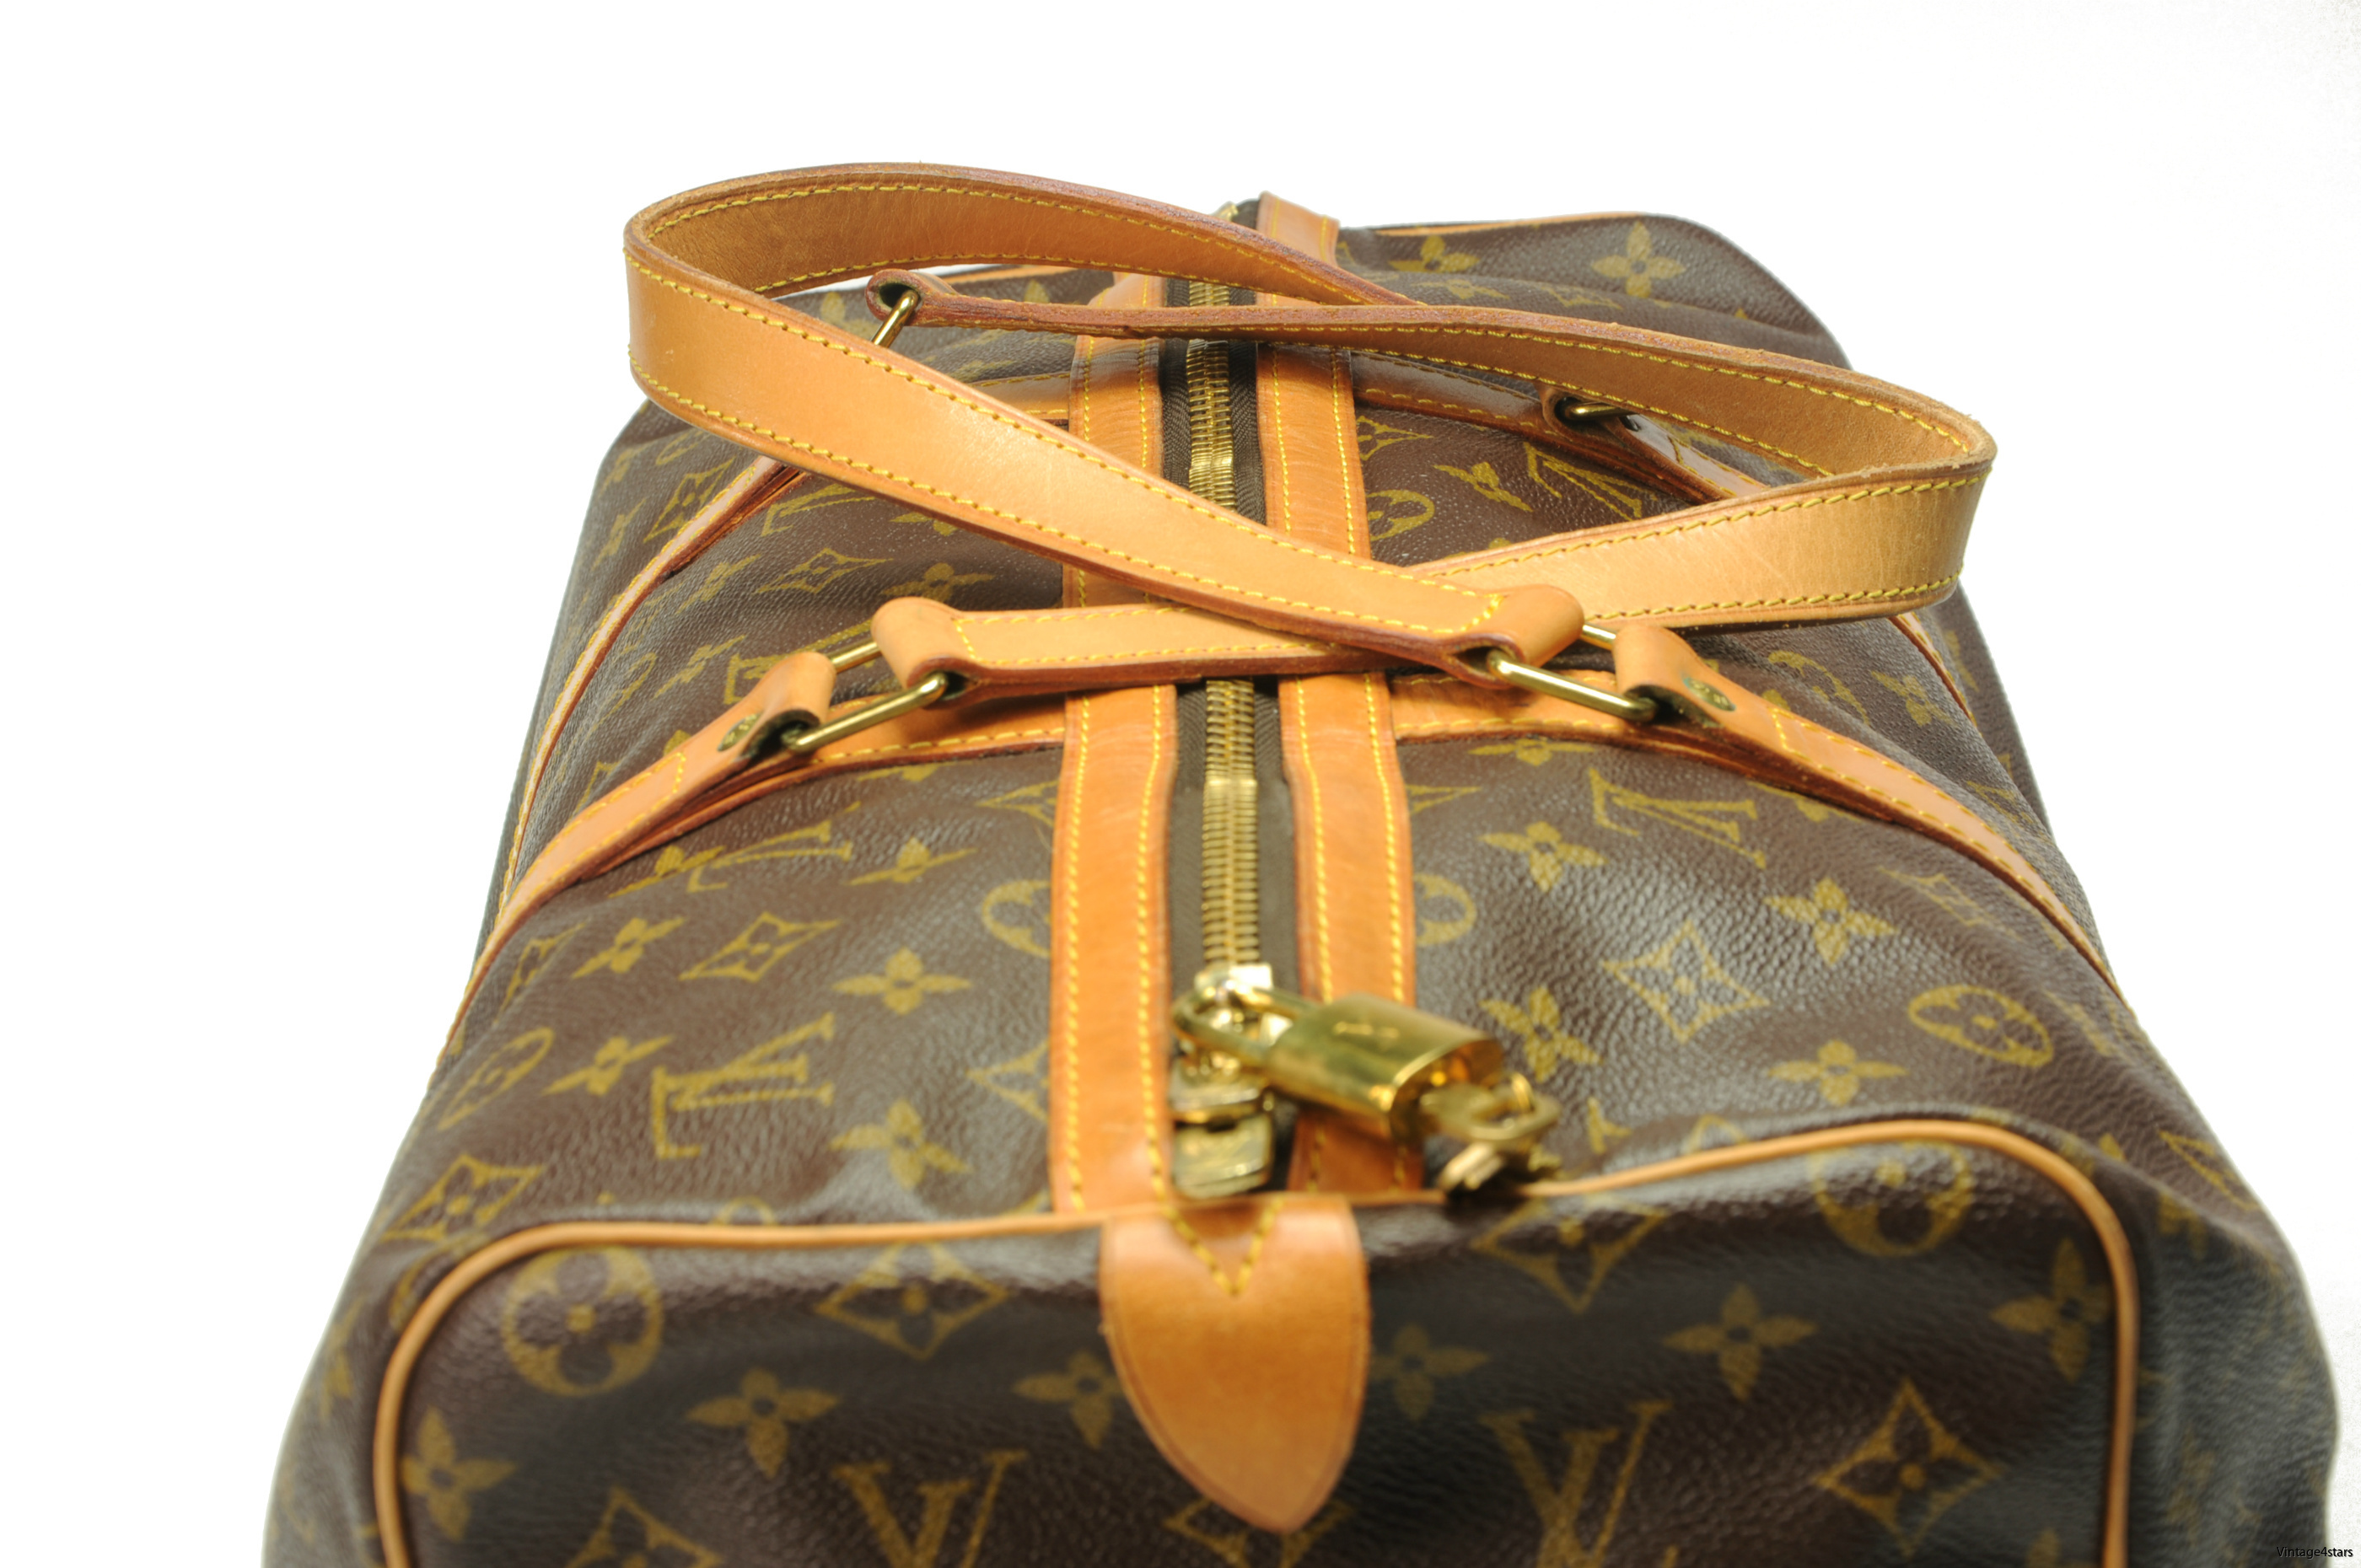 Louis Vuitton Sac Souple 45 5a